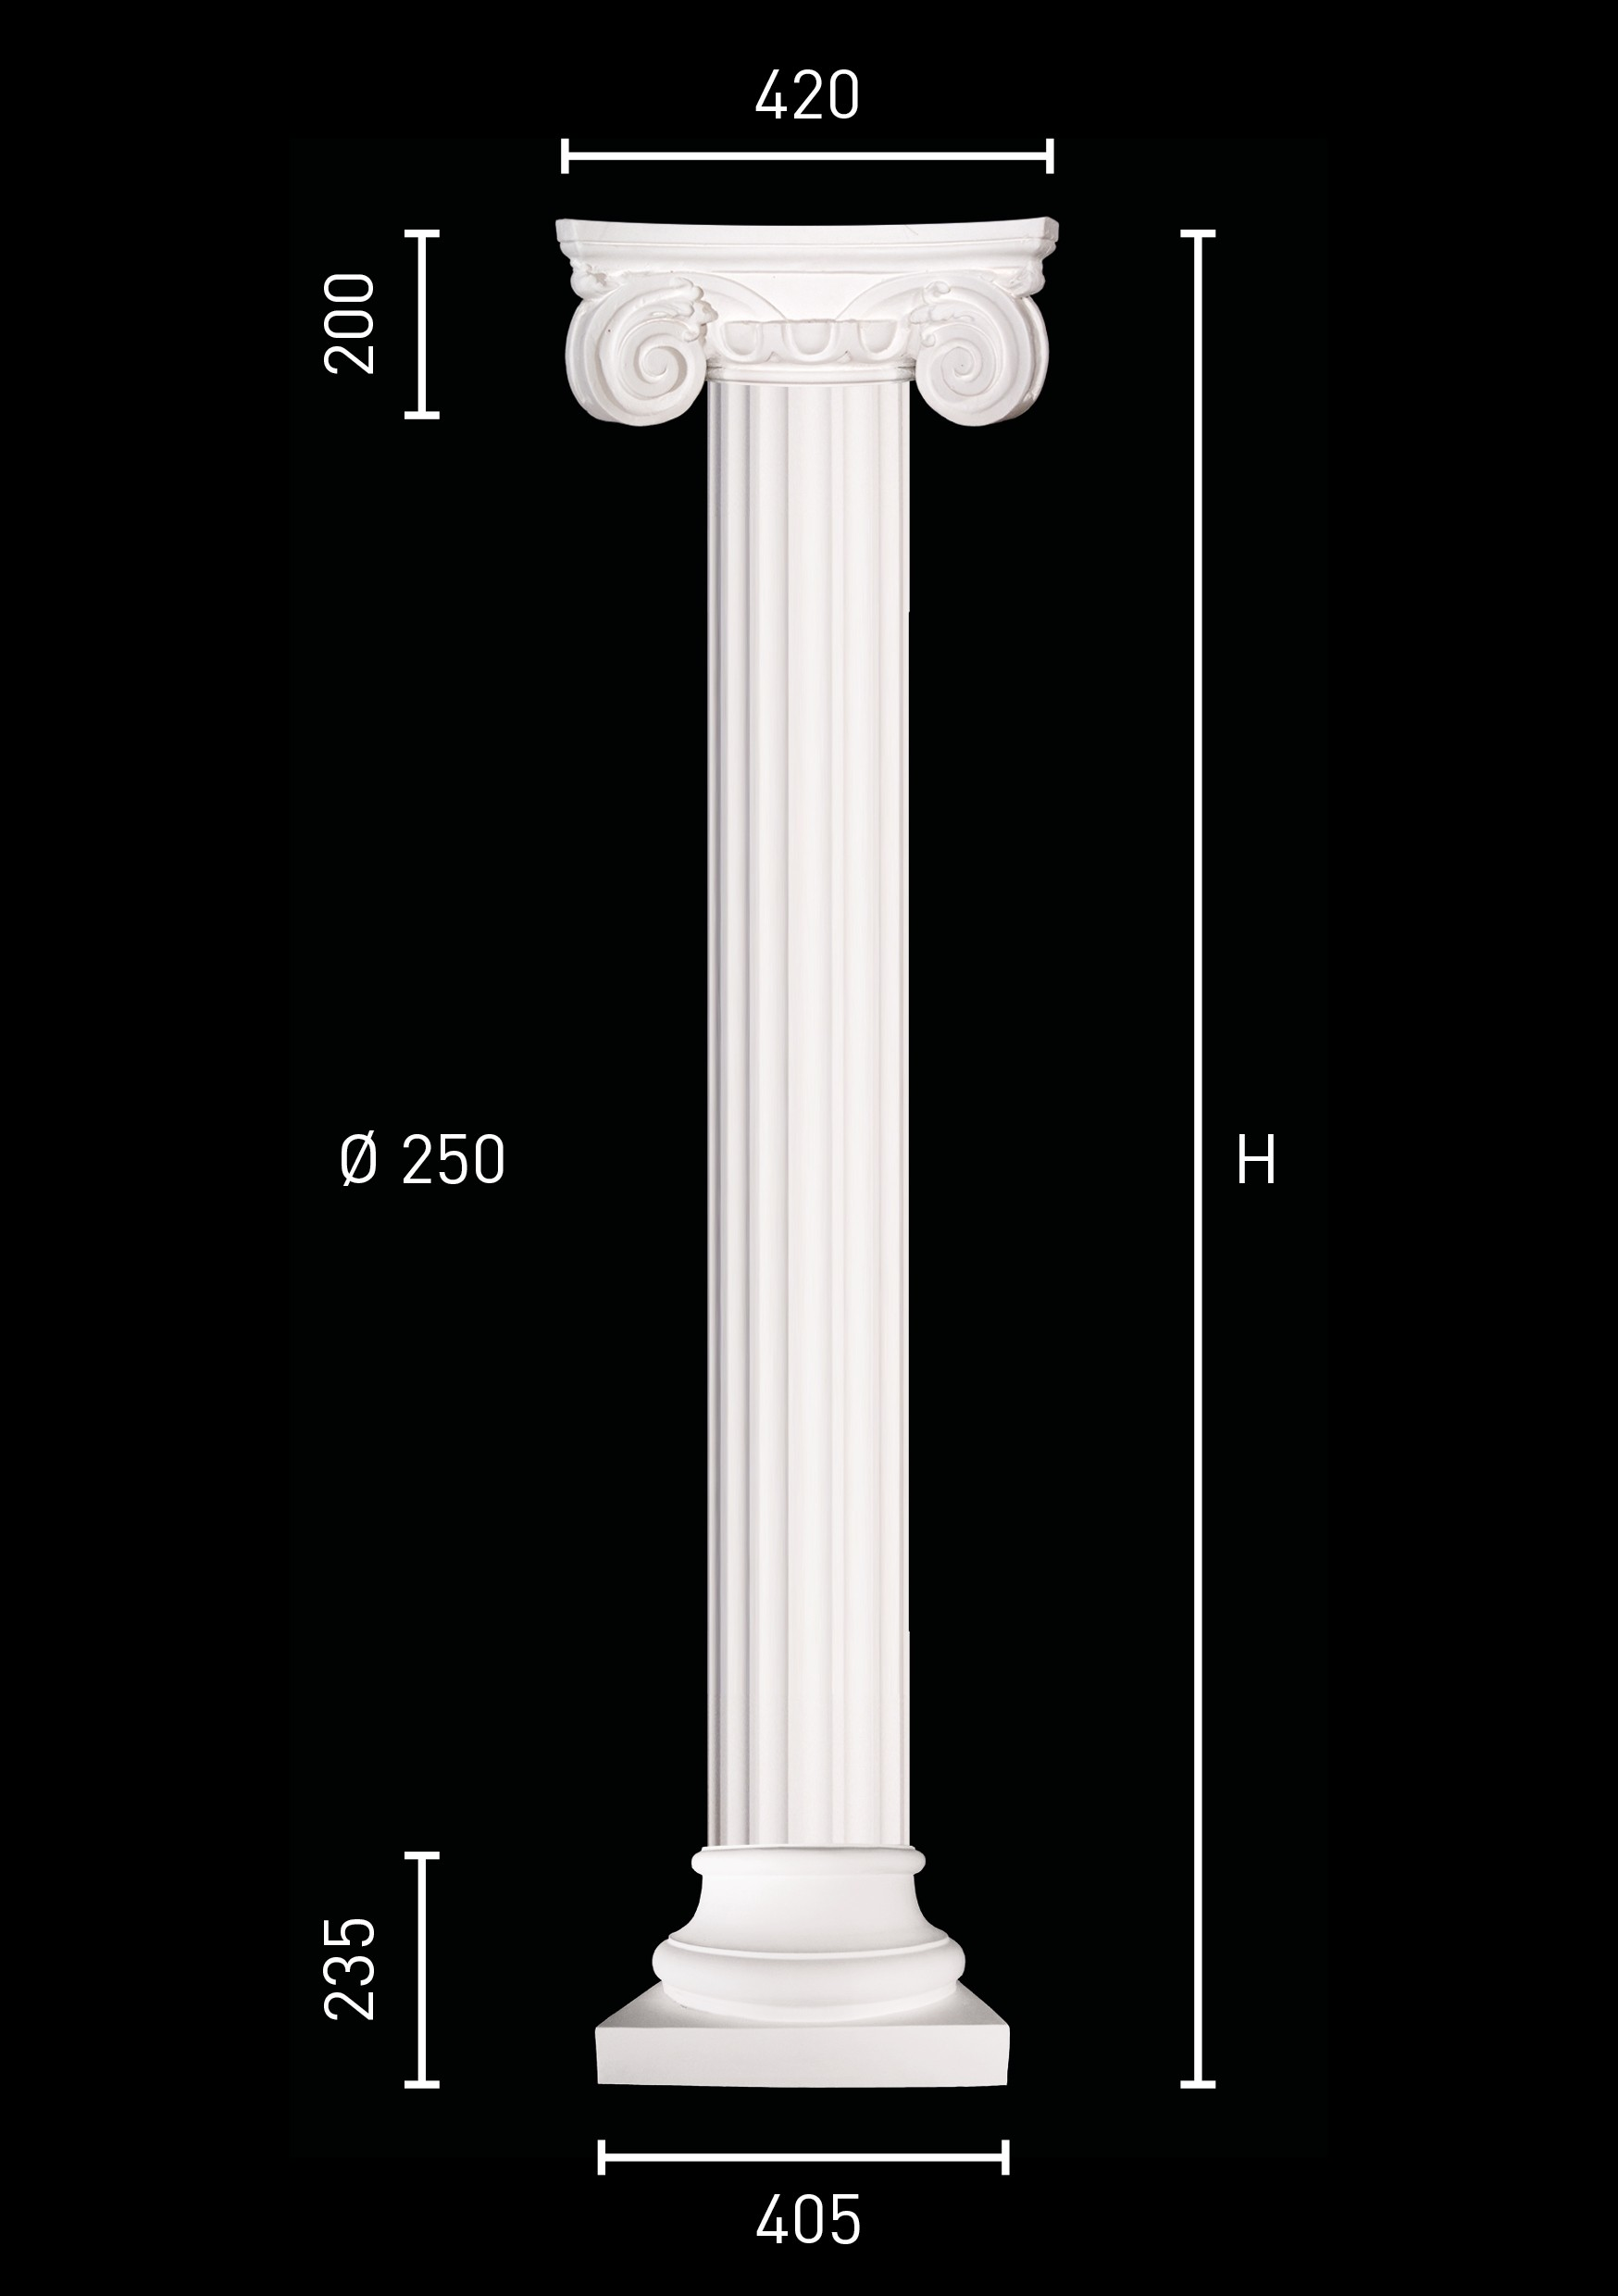 Plaster Column With Fluted Pillar Of 25 Cm In Diameter Ionic Capital And Clical Pedestal